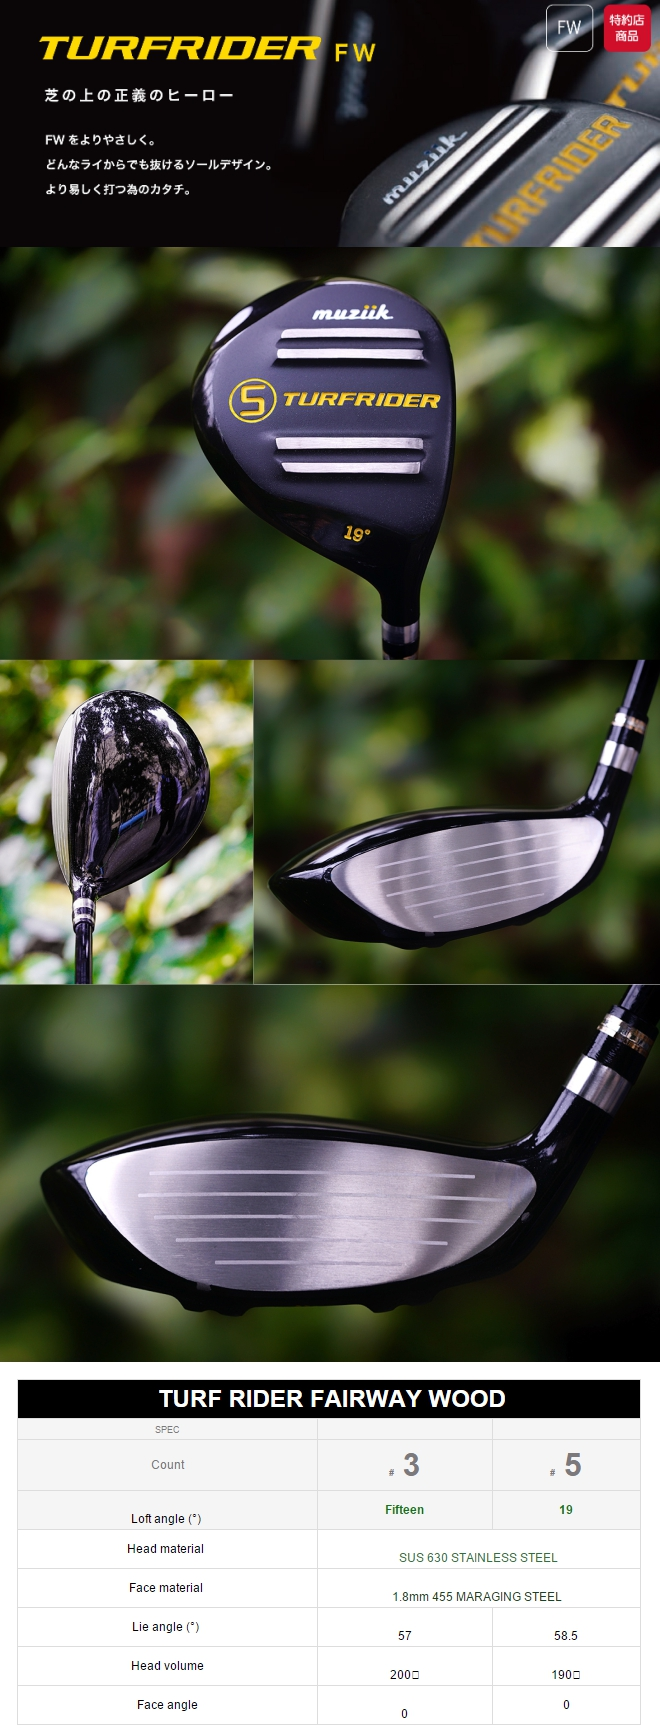 Muziik Turfrider Fairway Wood